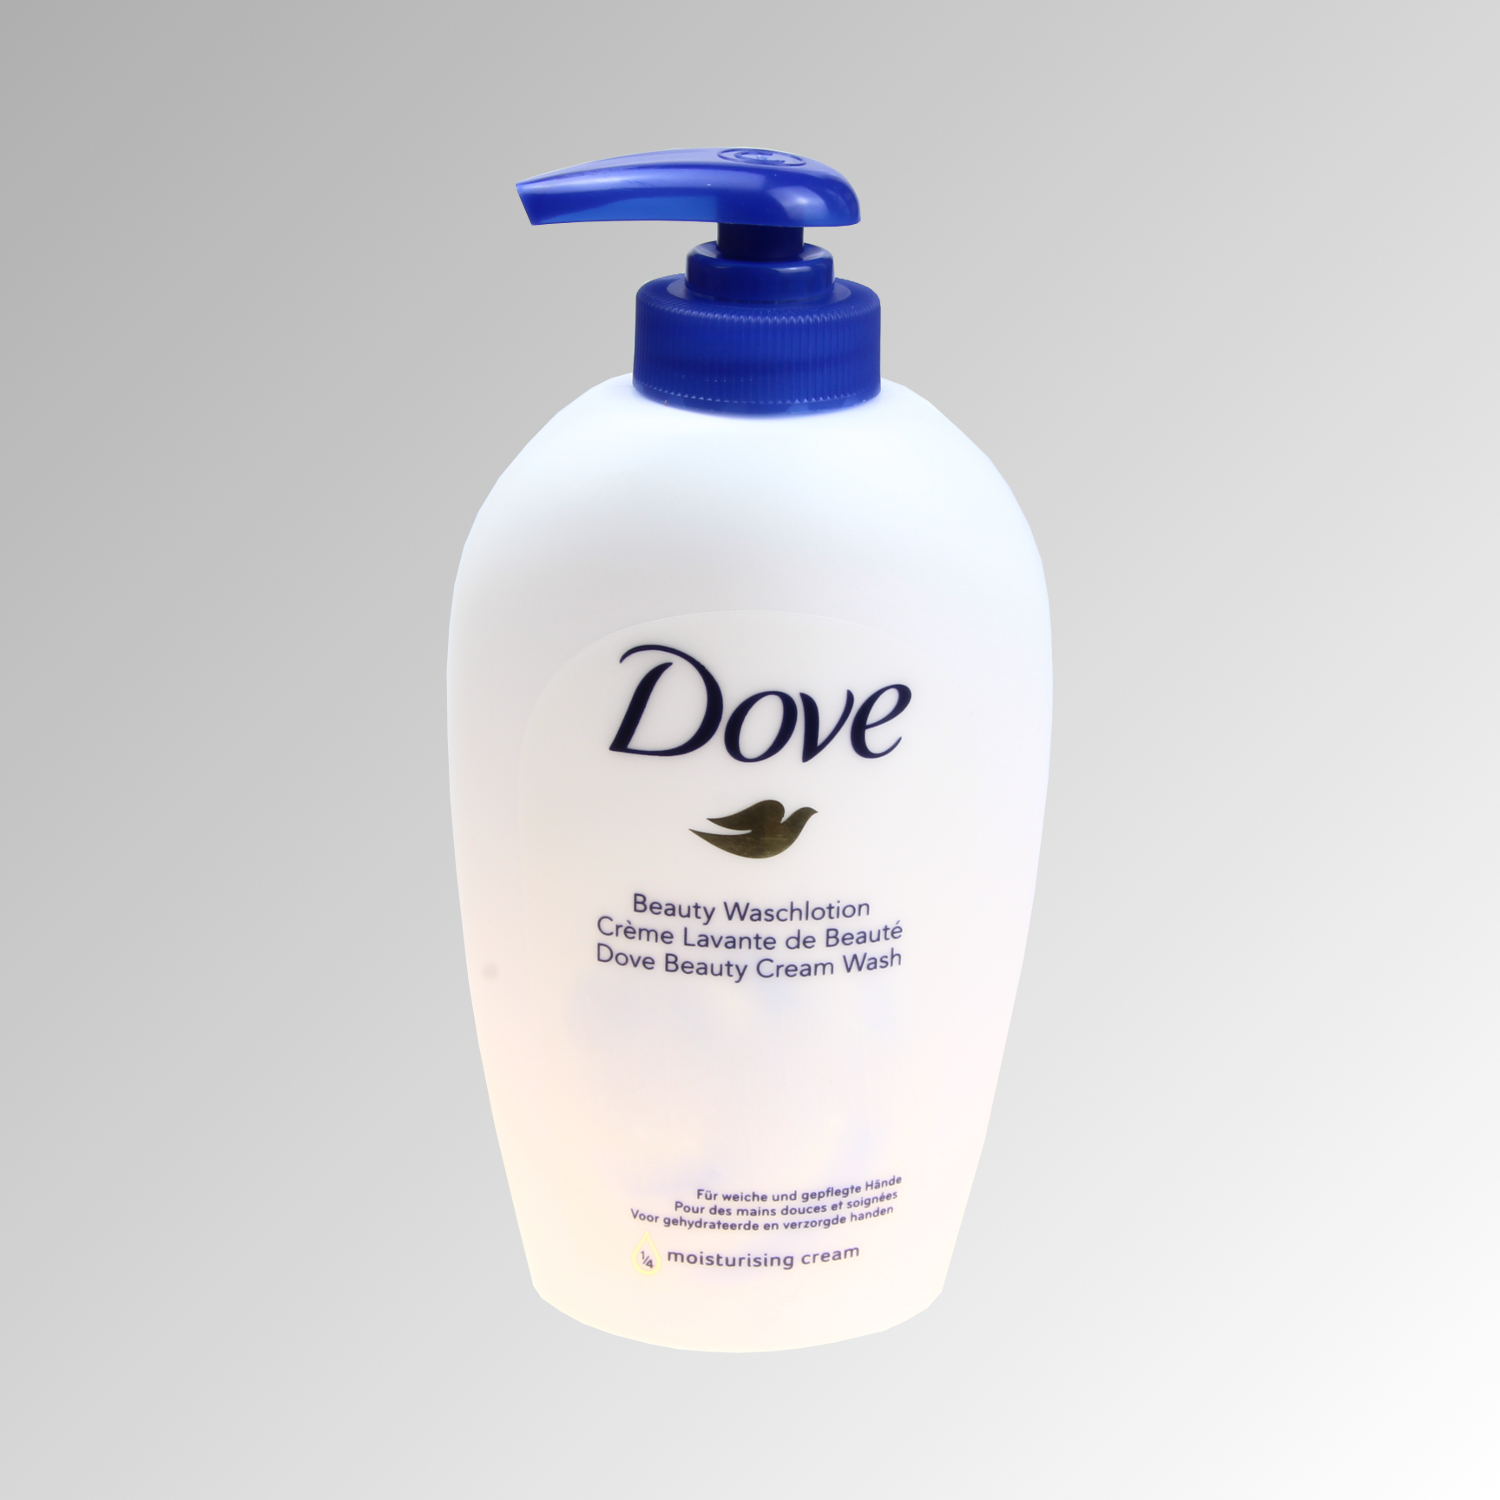 dove fl ssig seife 250ml beauty waschlotion cream ebay. Black Bedroom Furniture Sets. Home Design Ideas